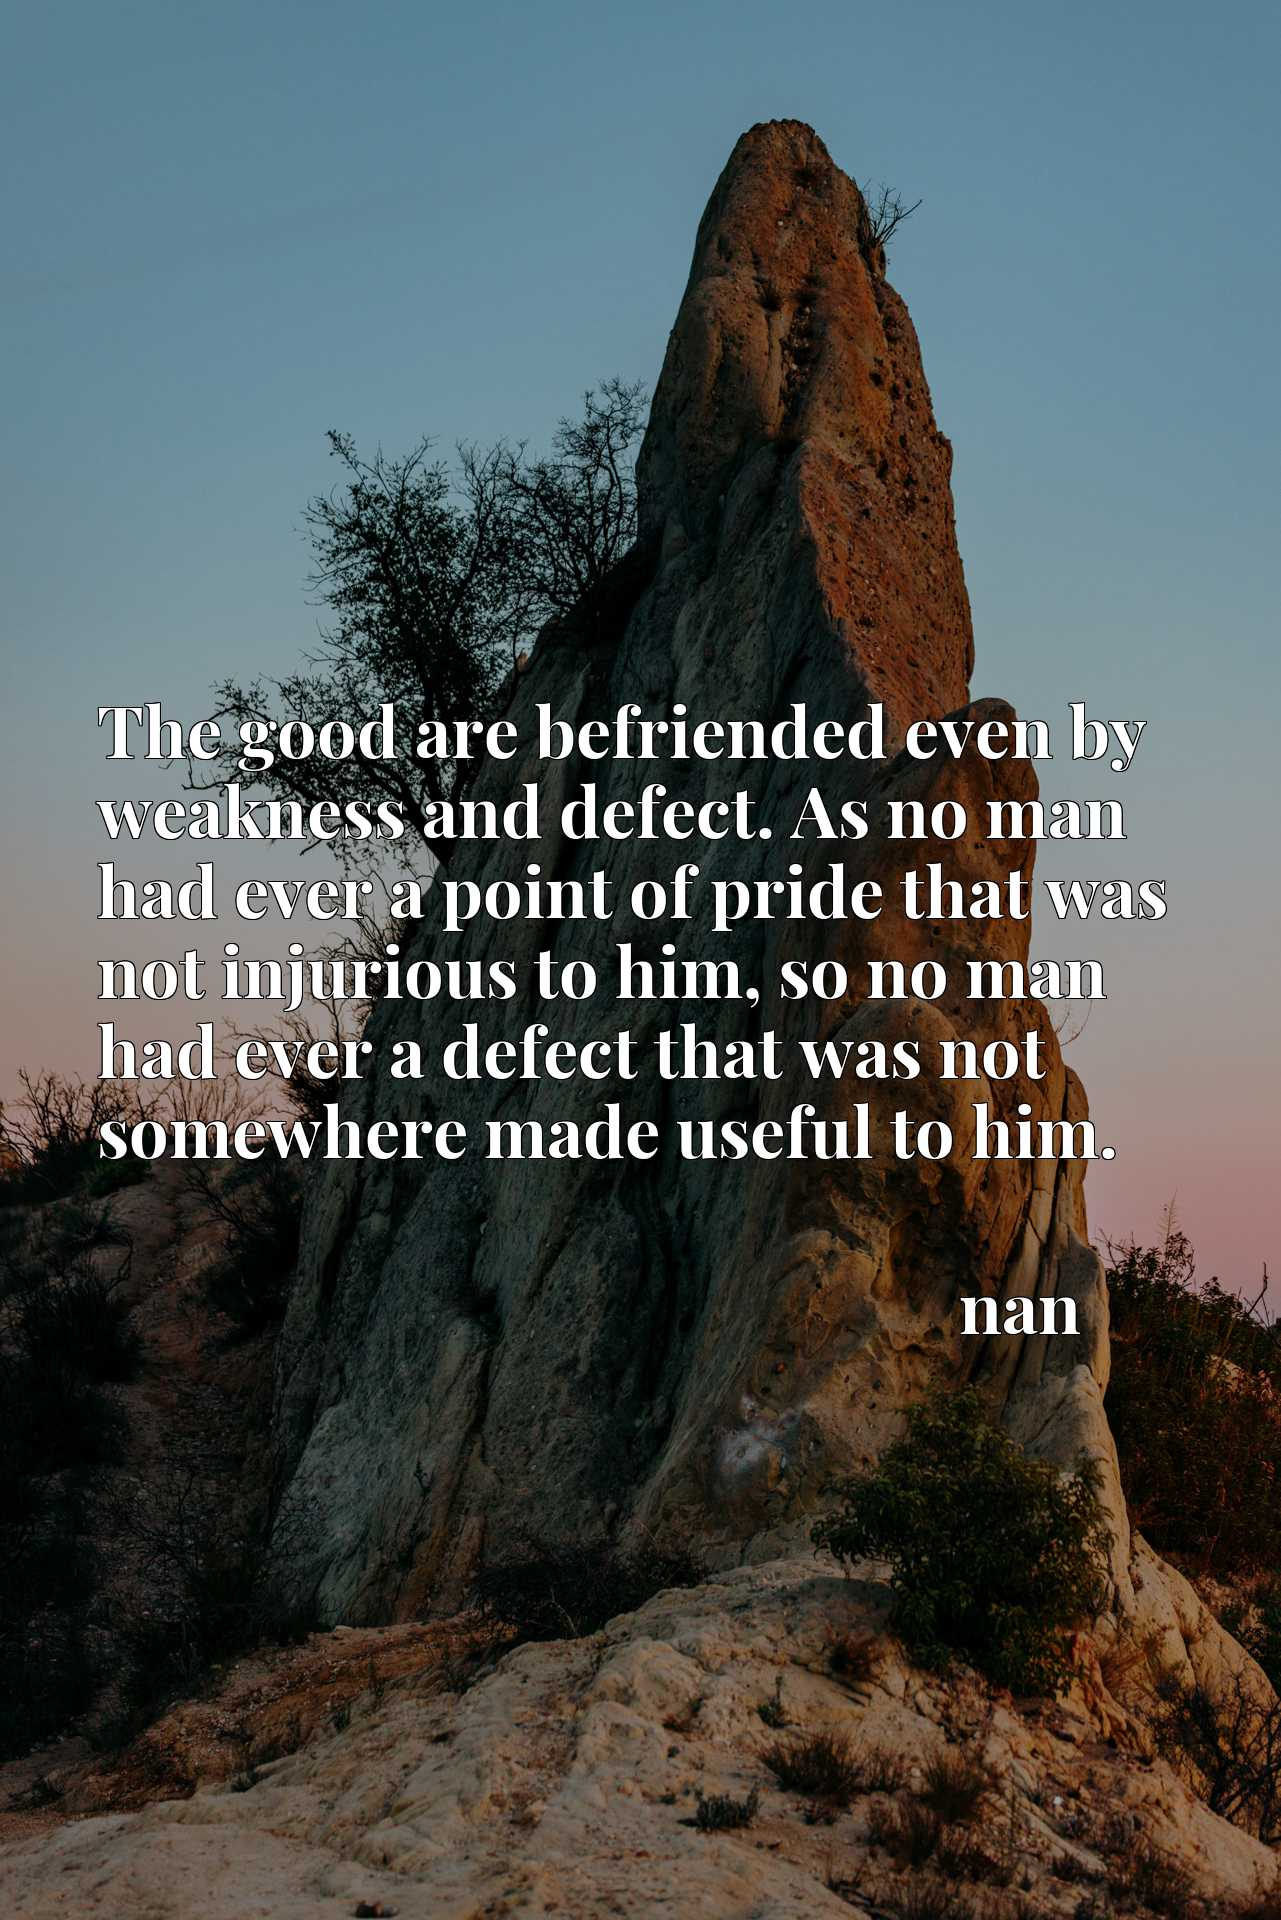 The good are befriended even by weakness and defect. As no man had ever a point of pride that was not injurious to him, so no man had ever a defect that was not somewhere made useful to him.